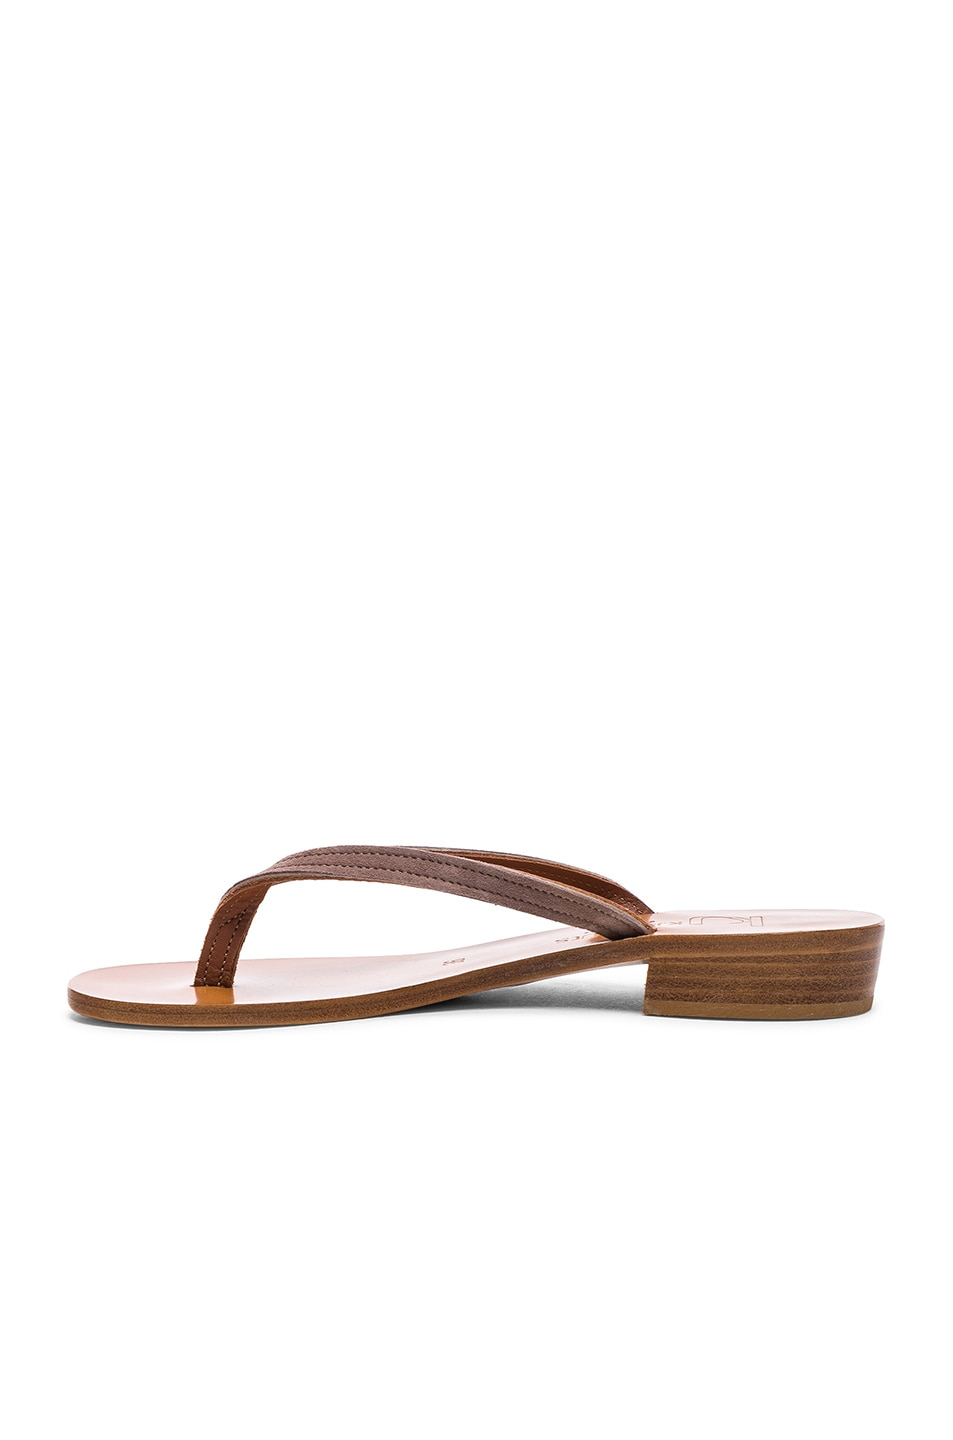 K jacques Prato Sandals in . EJAgu8a7ts